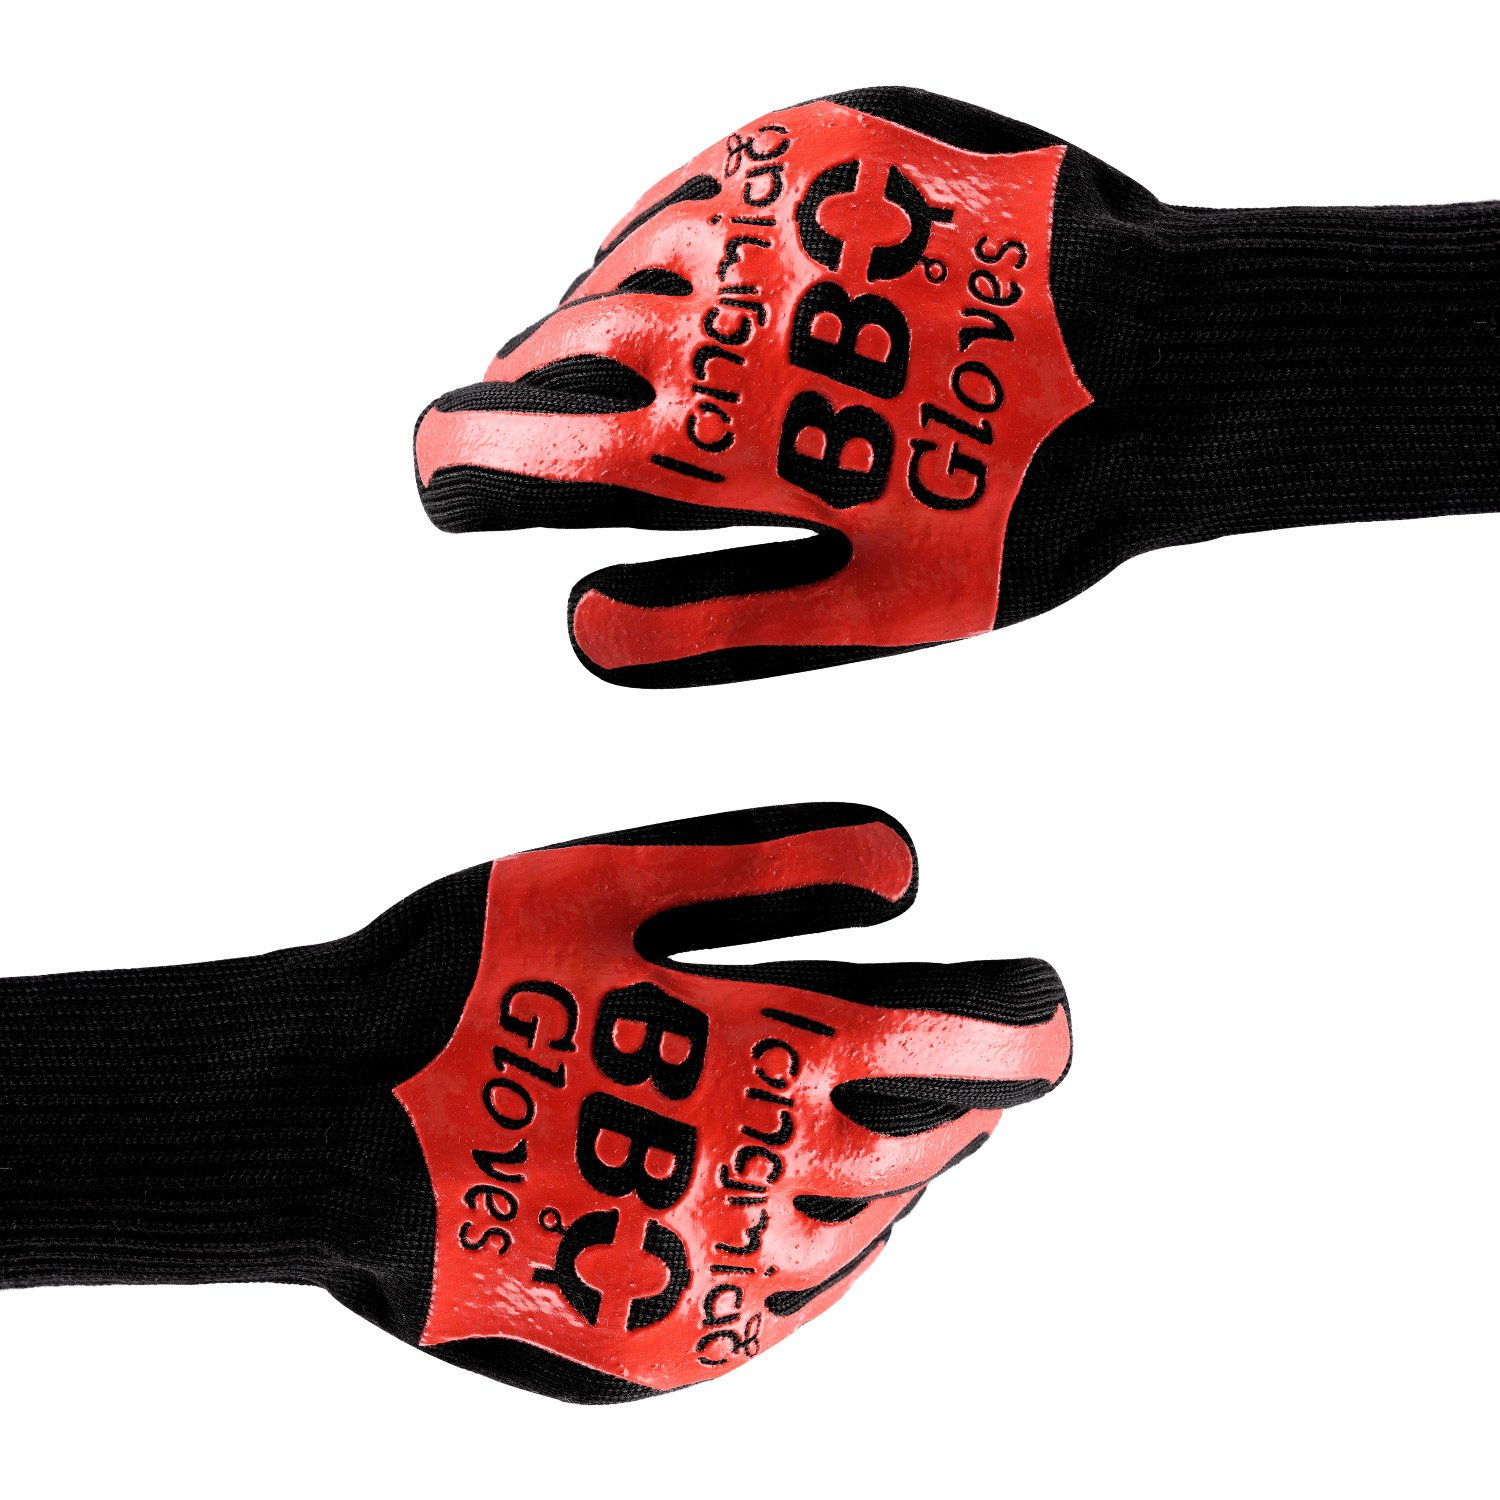 longmiao Thick BBQ Grill Gloves, Heat Resistant Barbecue Gloves for Cooking/Oven/Grilling 932°F Extreme by 1 Pair